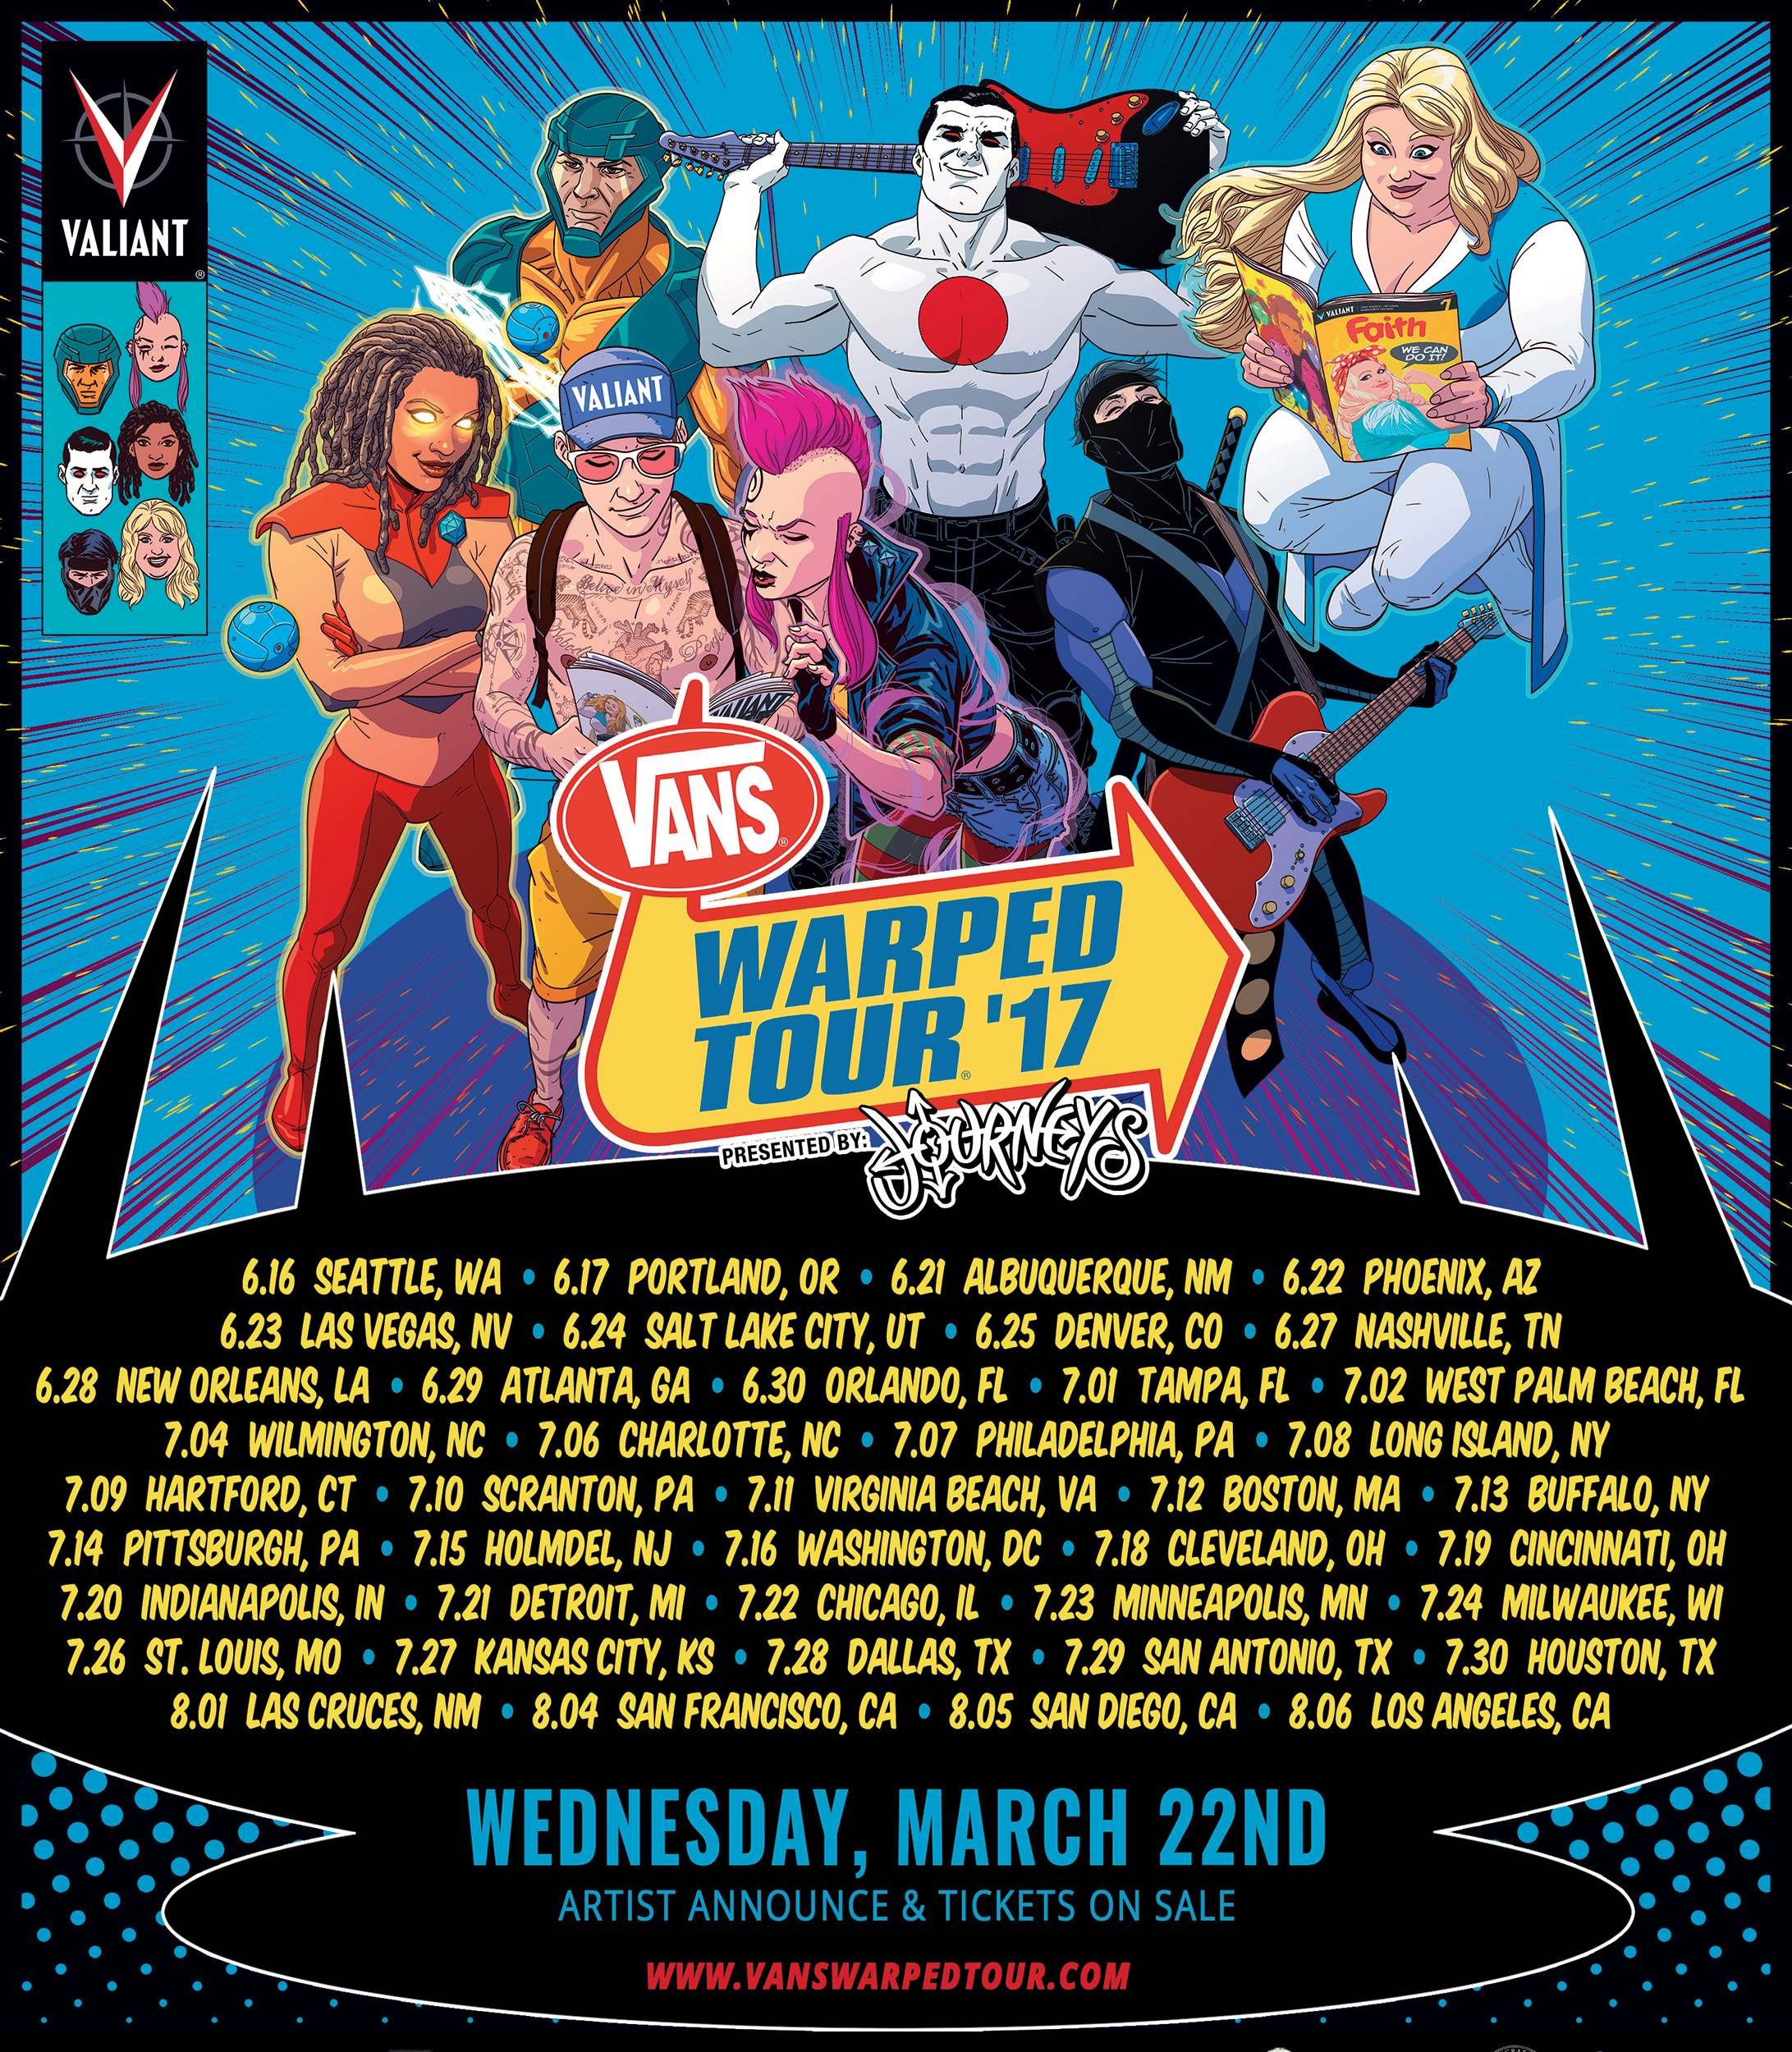 Vans Warped Tour 17